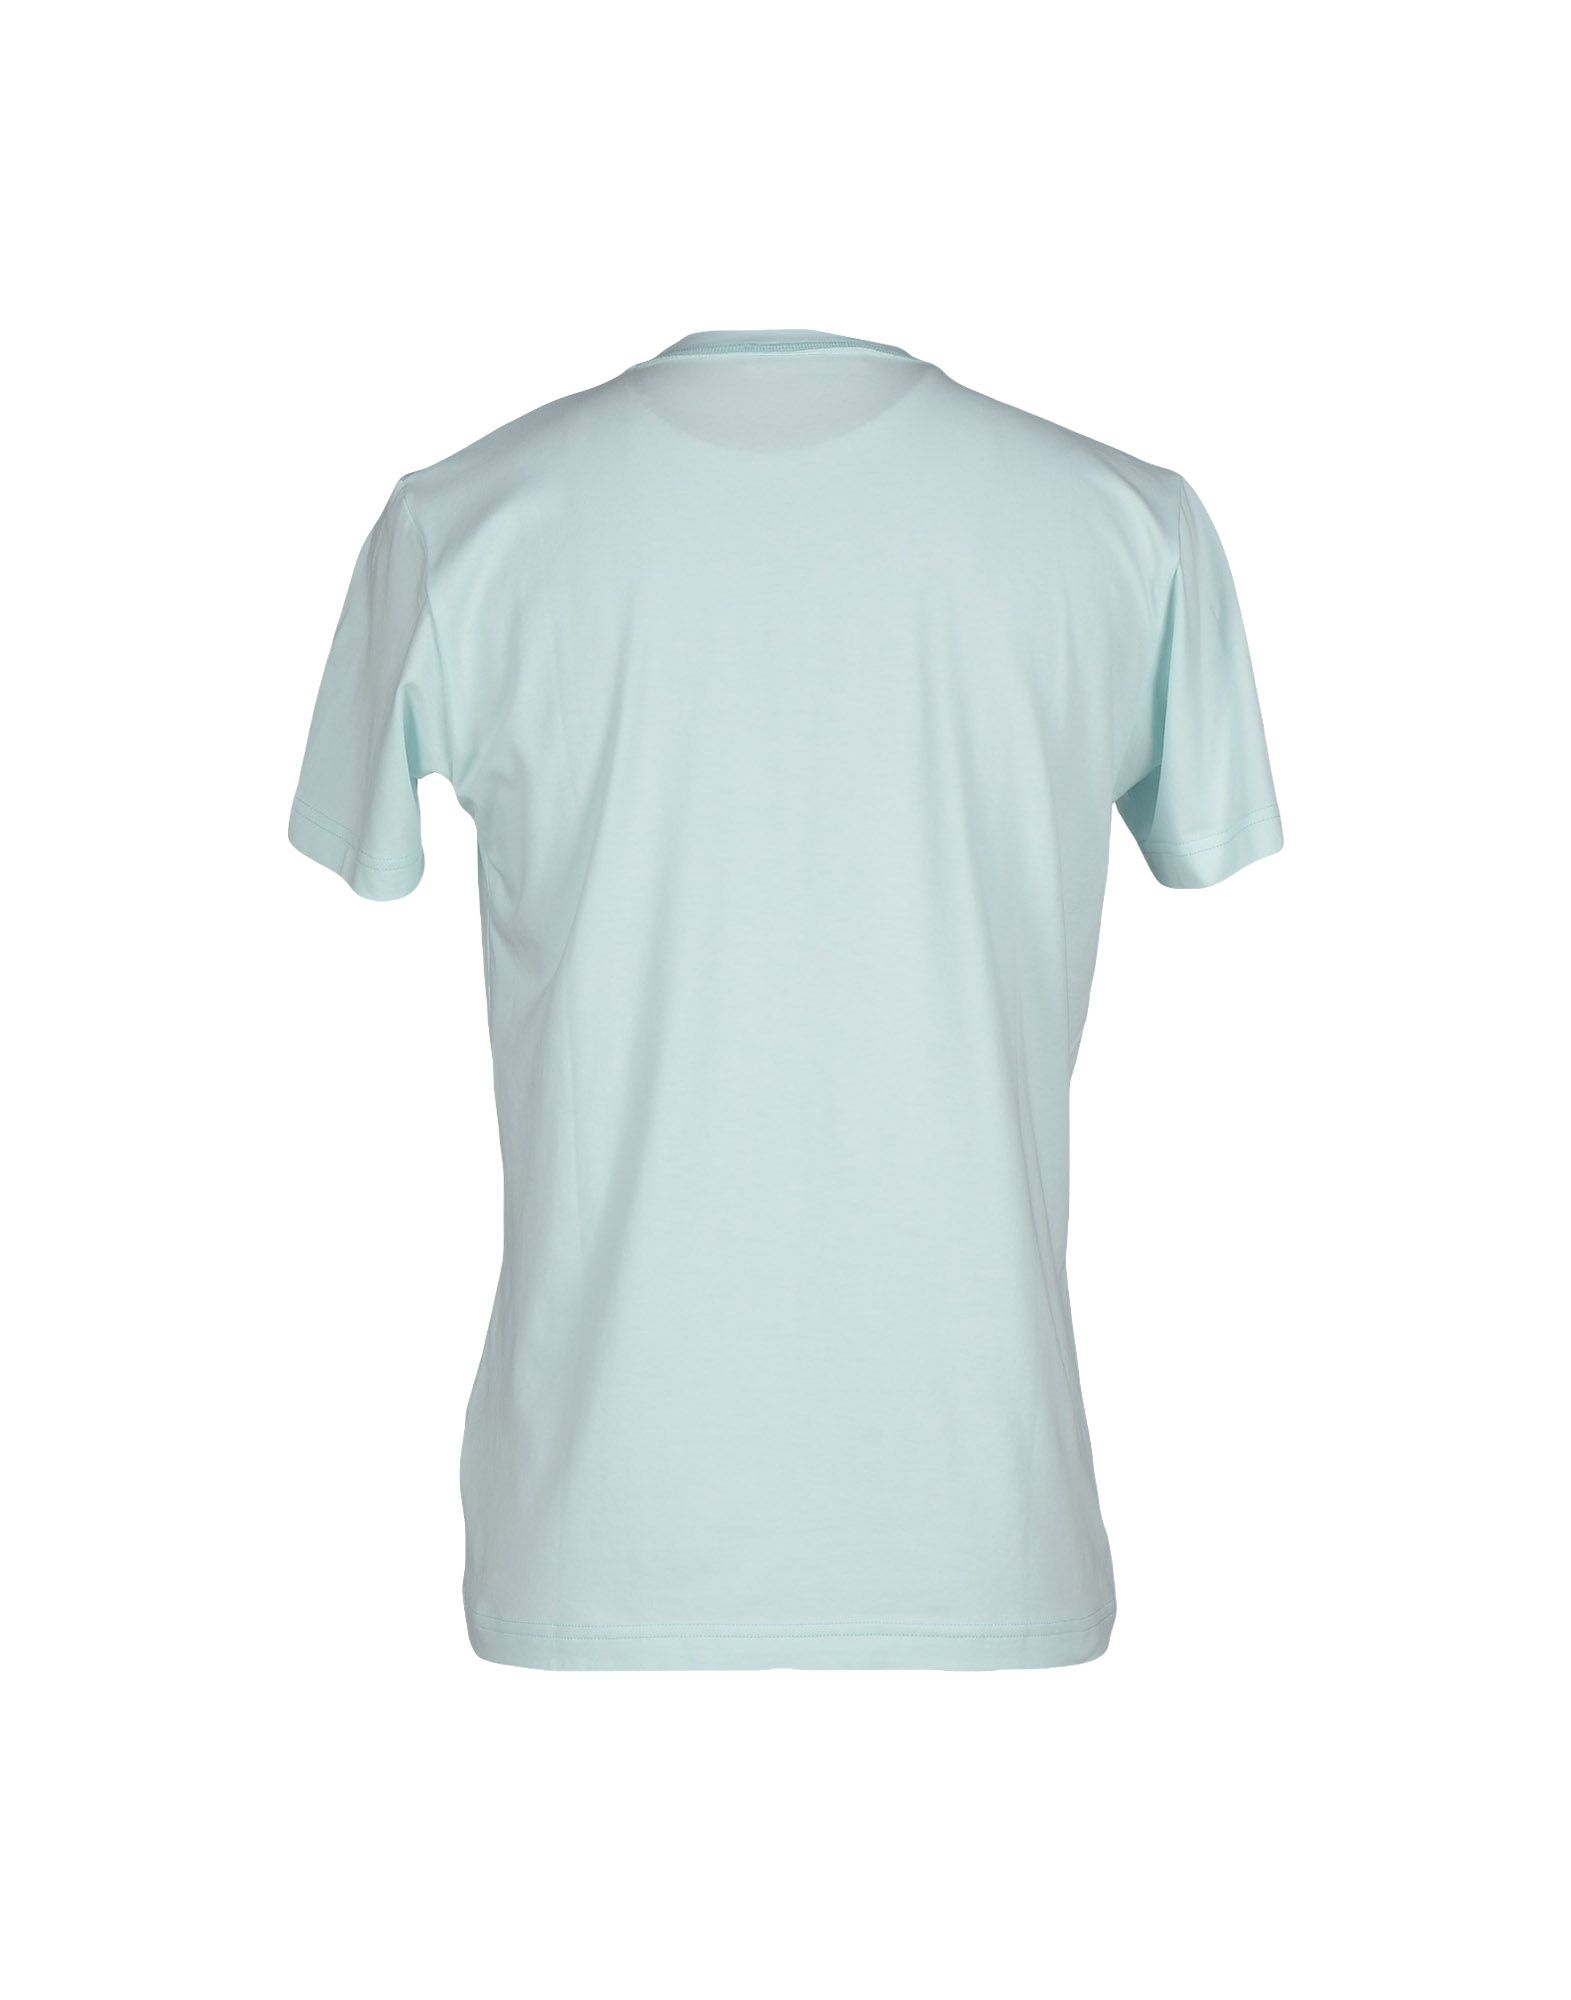 balmain t shirt in blue for men sky blue save 51 lyst. Black Bedroom Furniture Sets. Home Design Ideas